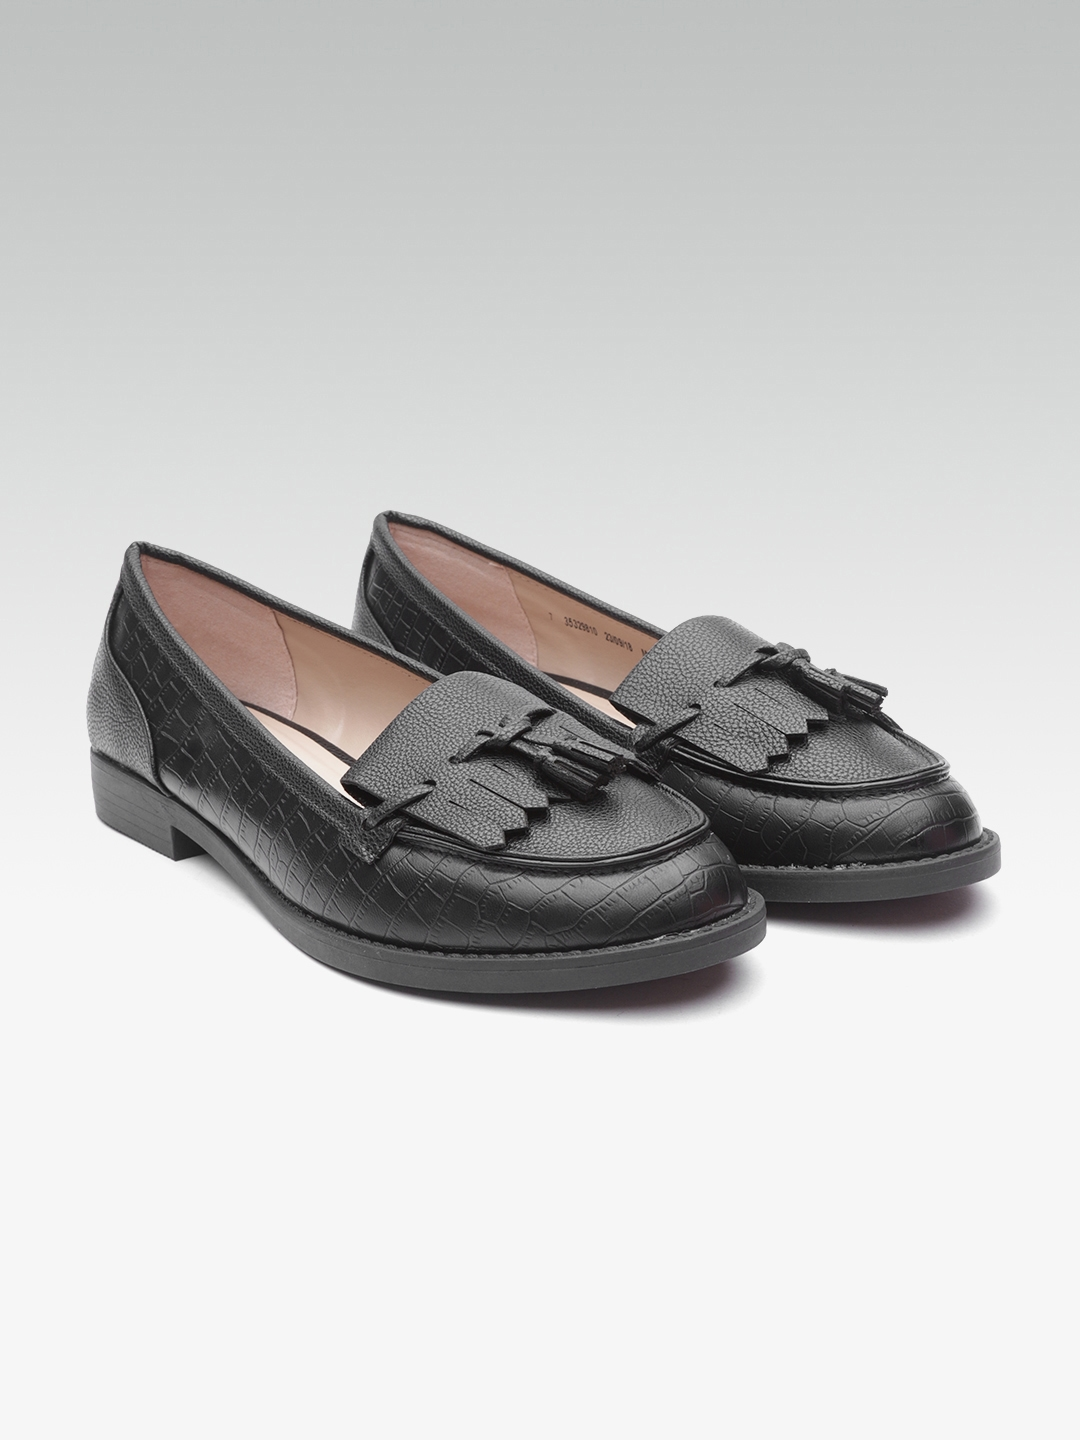 3bcd80499 Buy DOROTHY PERKINS Women Black Croc Textured Loafers - Casual Shoes ...